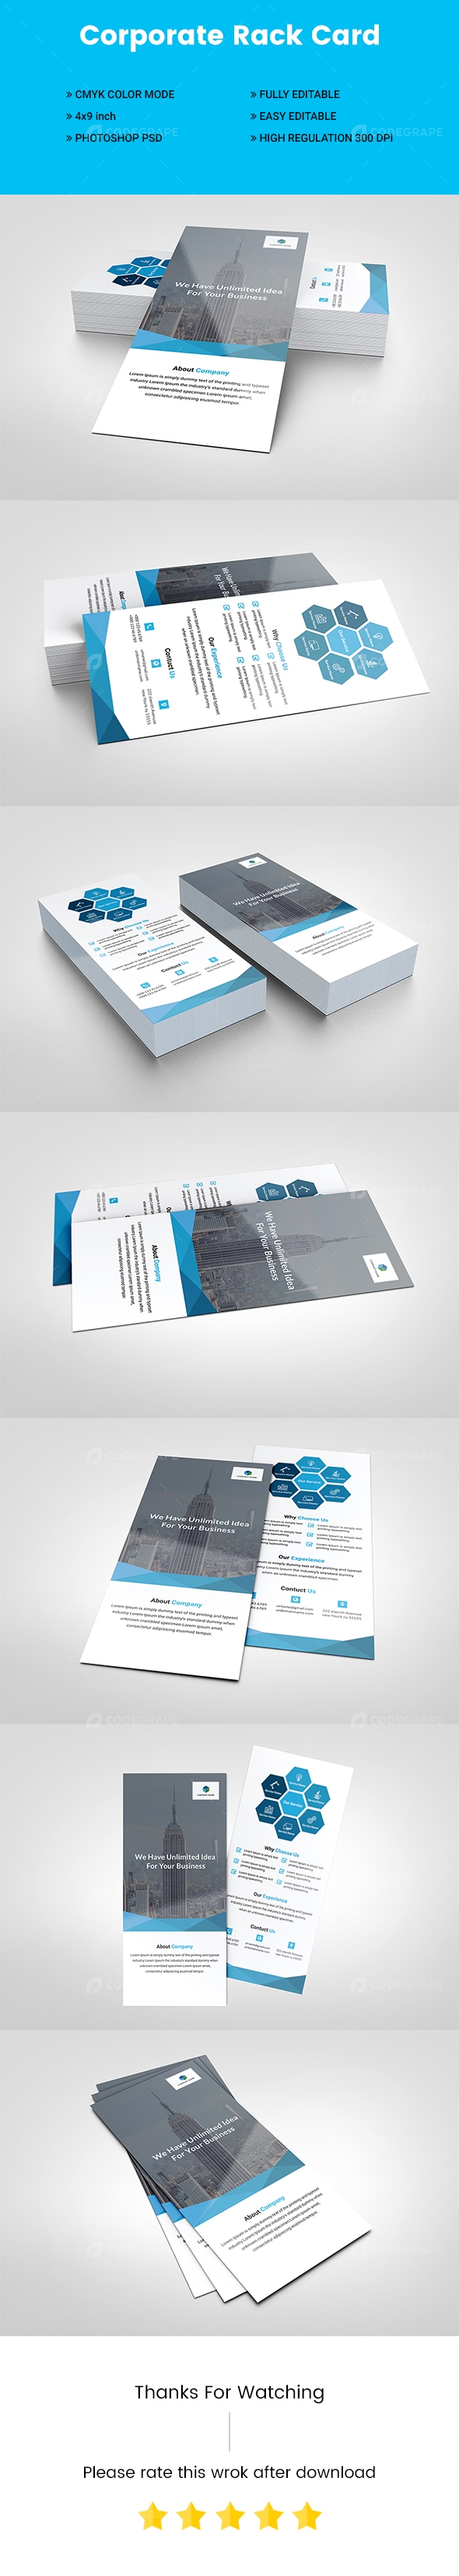 Corporate Rack Card Templates